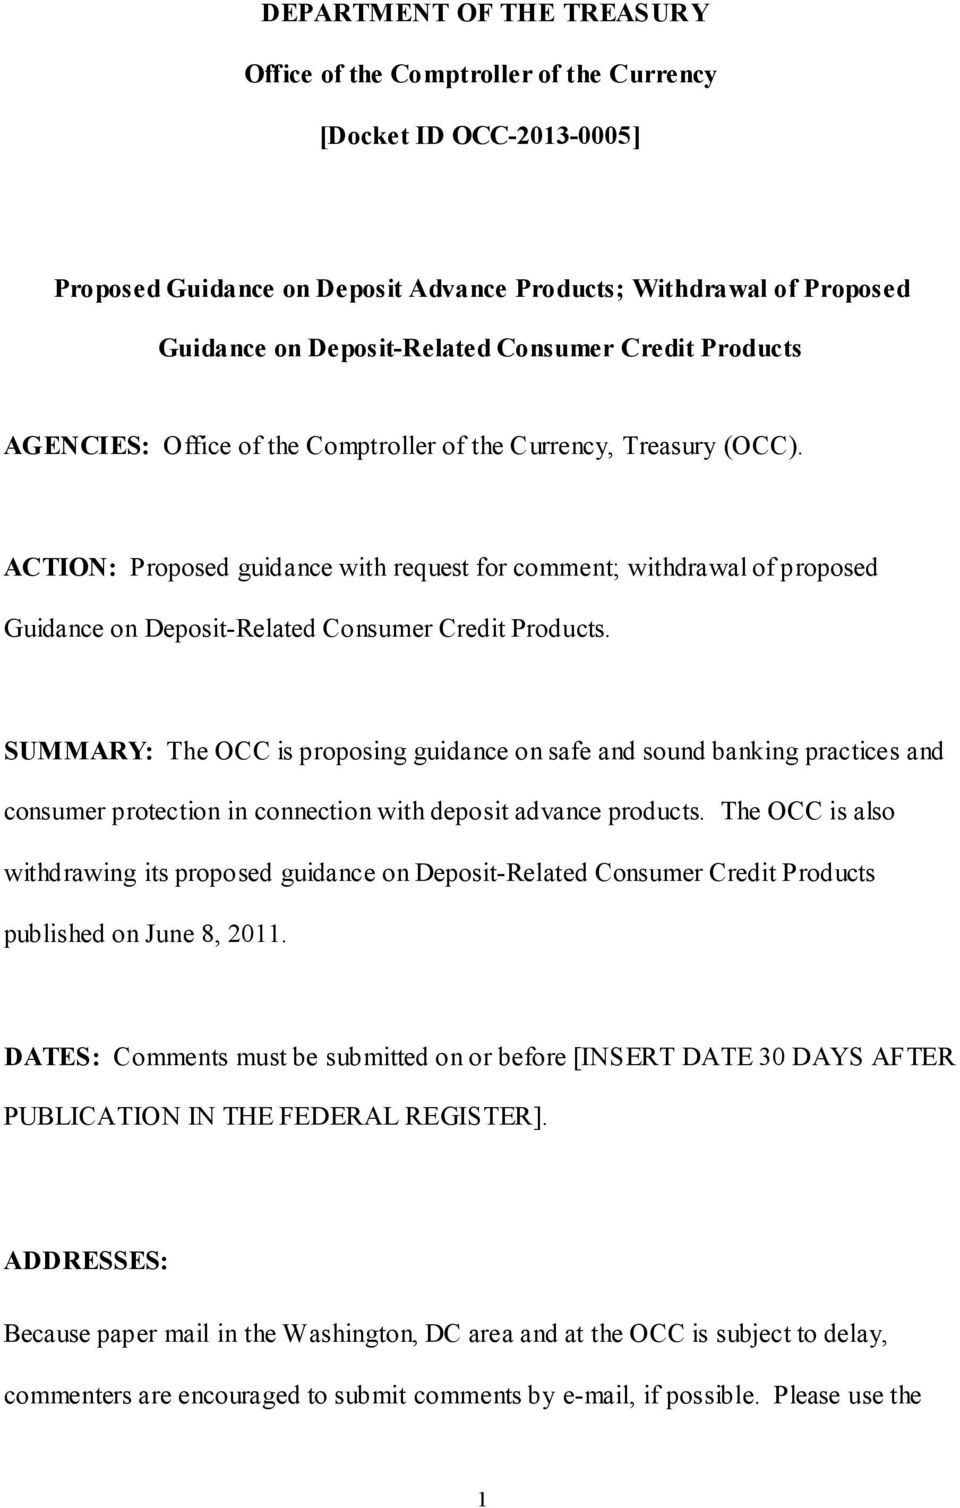 ACTION: Proposed guidance with request for comment; withdrawal of proposed Guidance on Deposit-Related Consumer Credit Products.